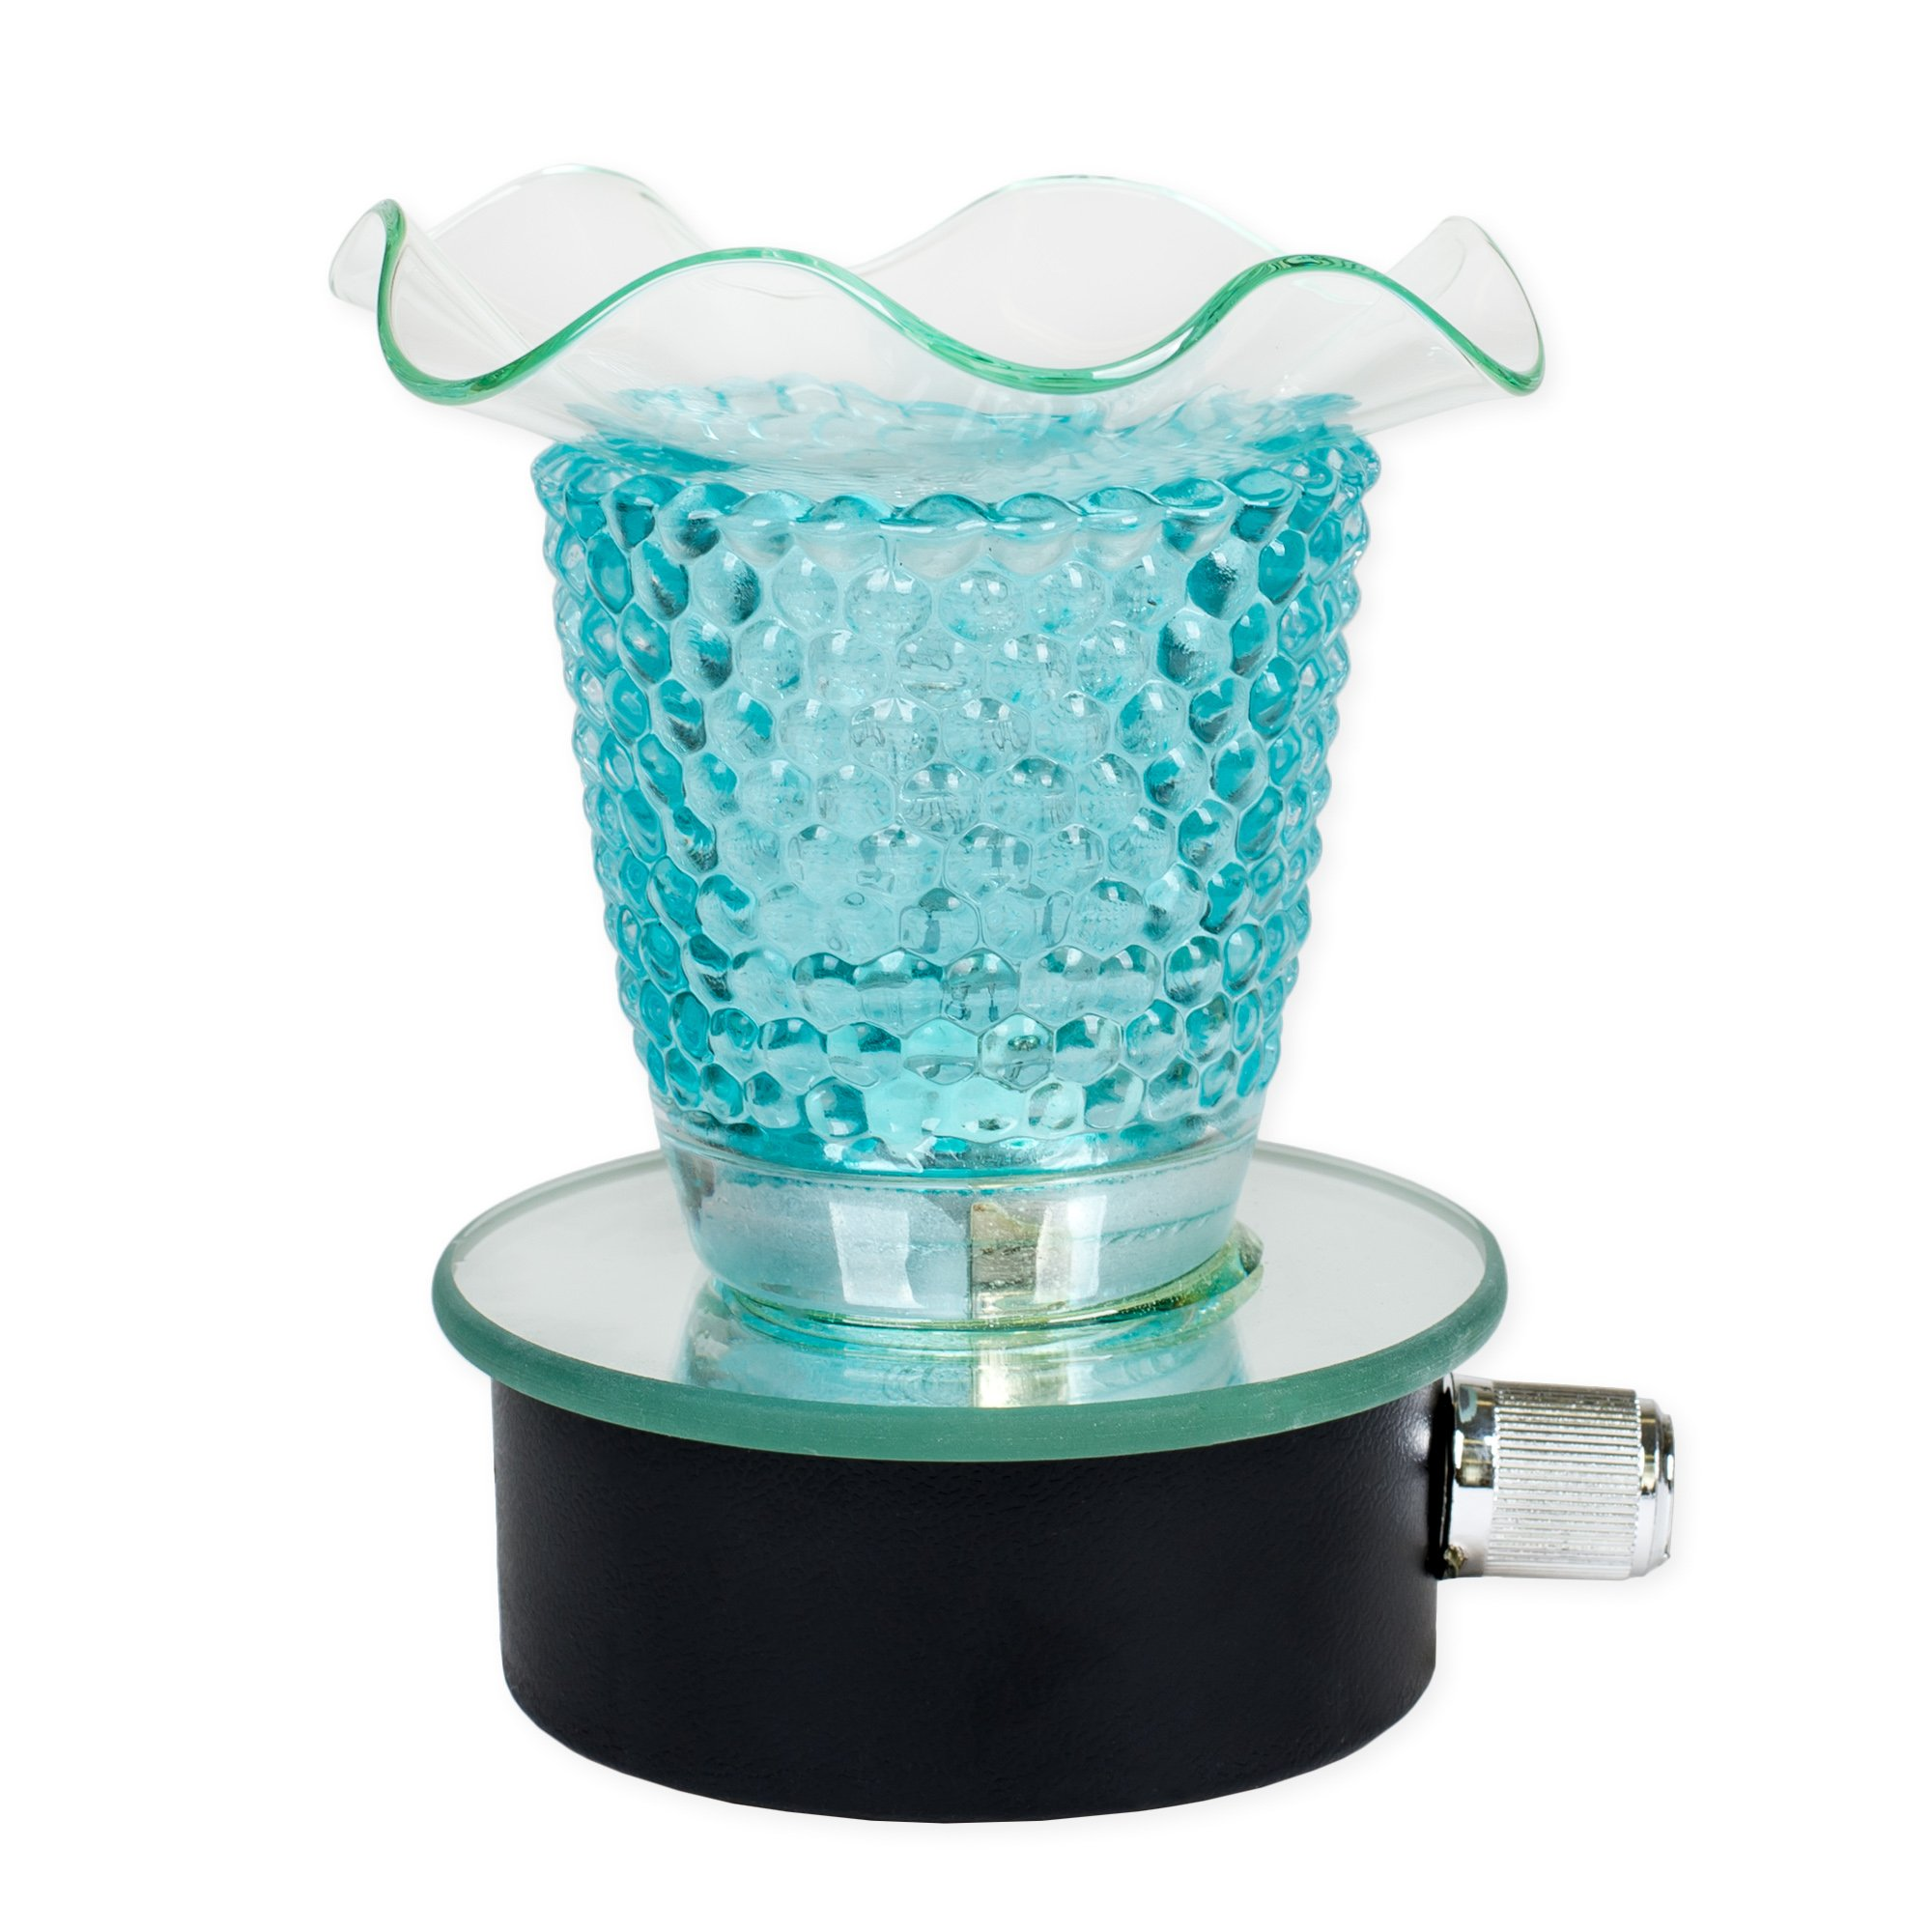 Blue Mirror 3 Inch Clear Glass Wall Plug In Oil Tart Warmer with Dimmer Dial